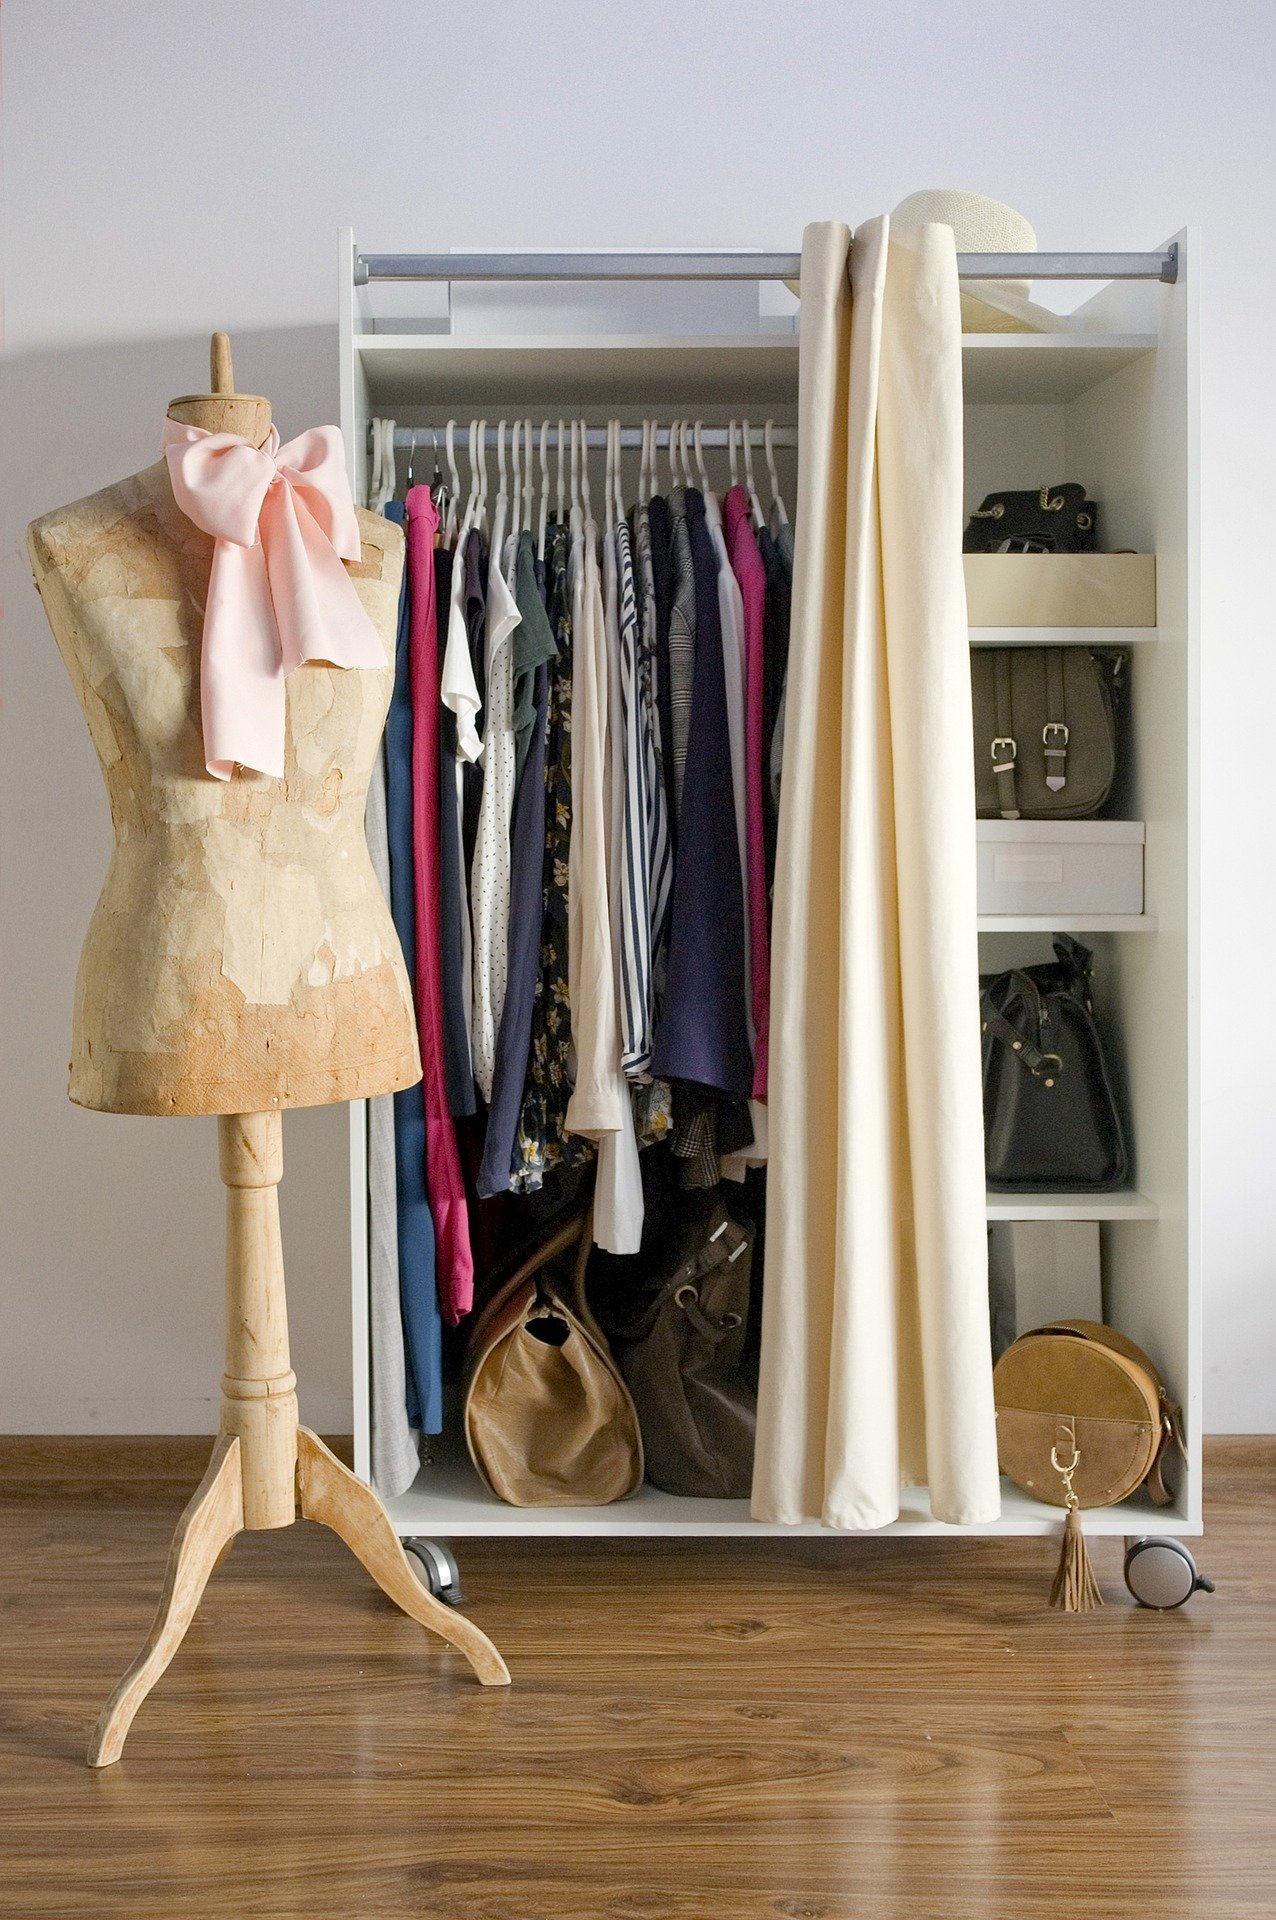 How to layout your wardrobe like an influencer, with chic, matching hangers and handbag storage